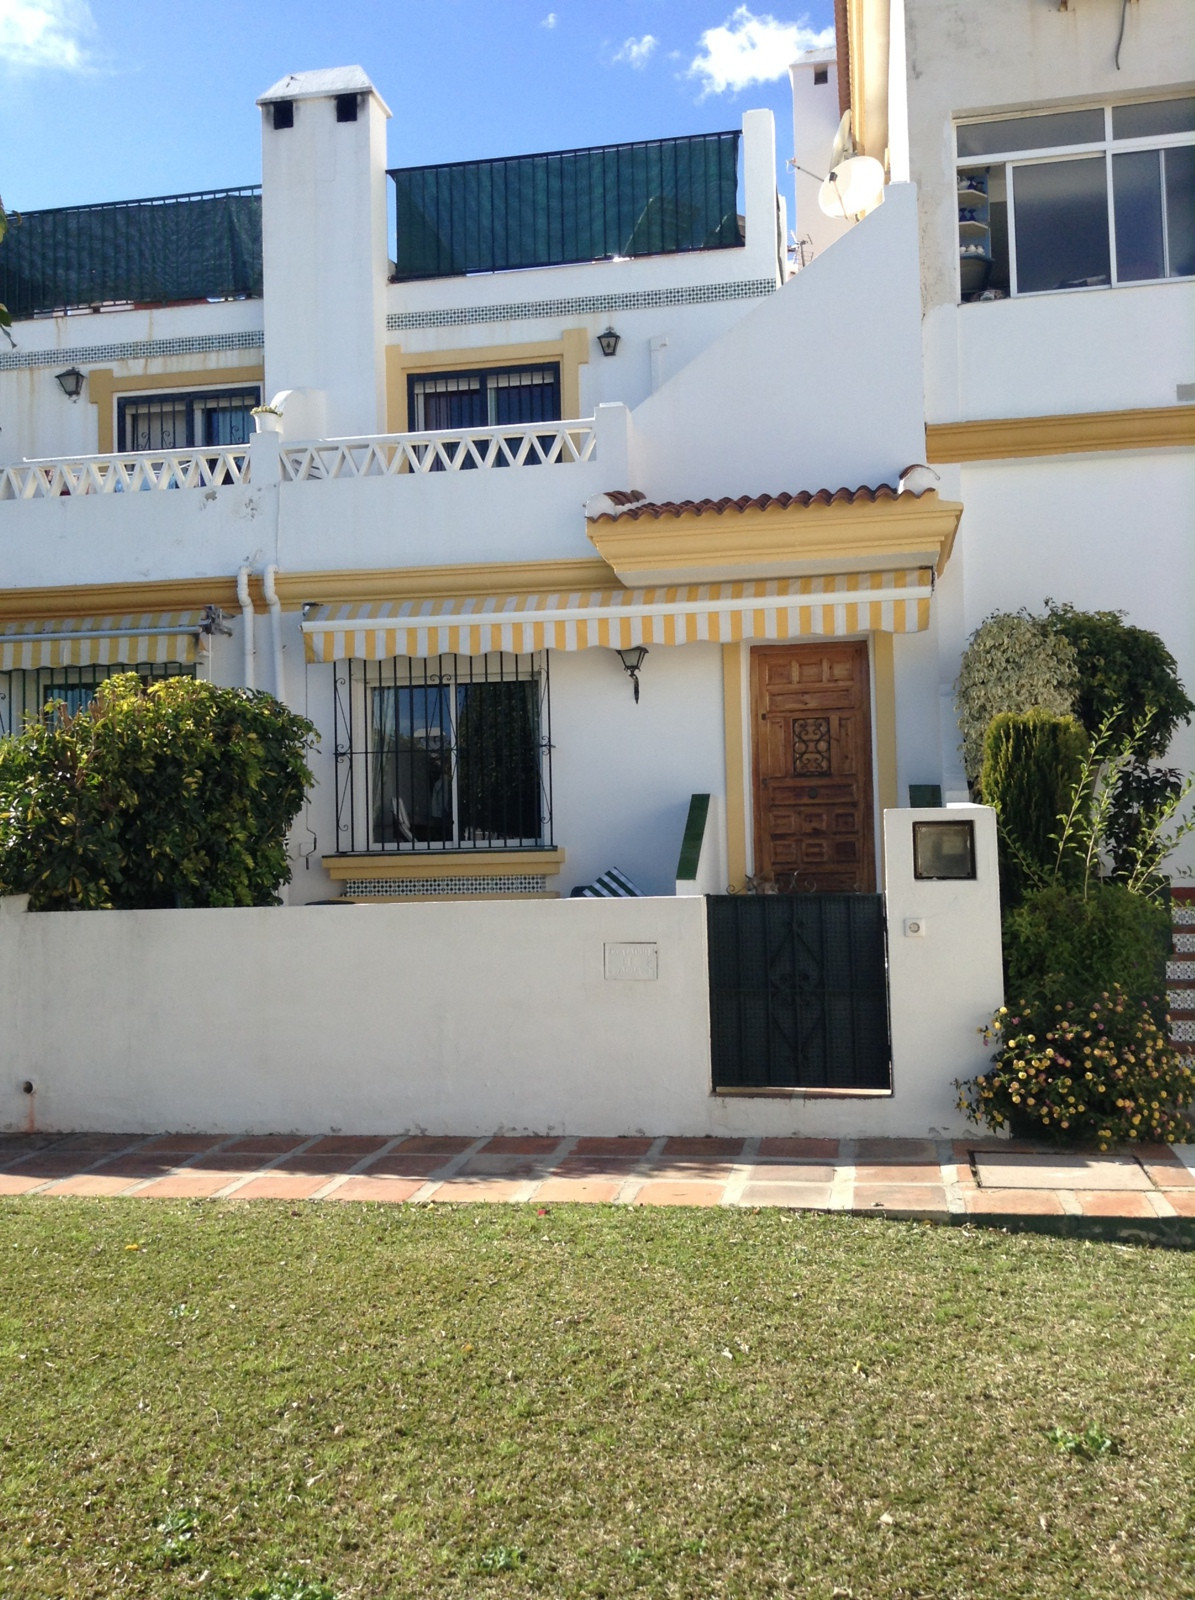 Lovely townhouse in Montemar, easy walking distance to all amenities, beach (650 m) Pinillo Train st, Spain